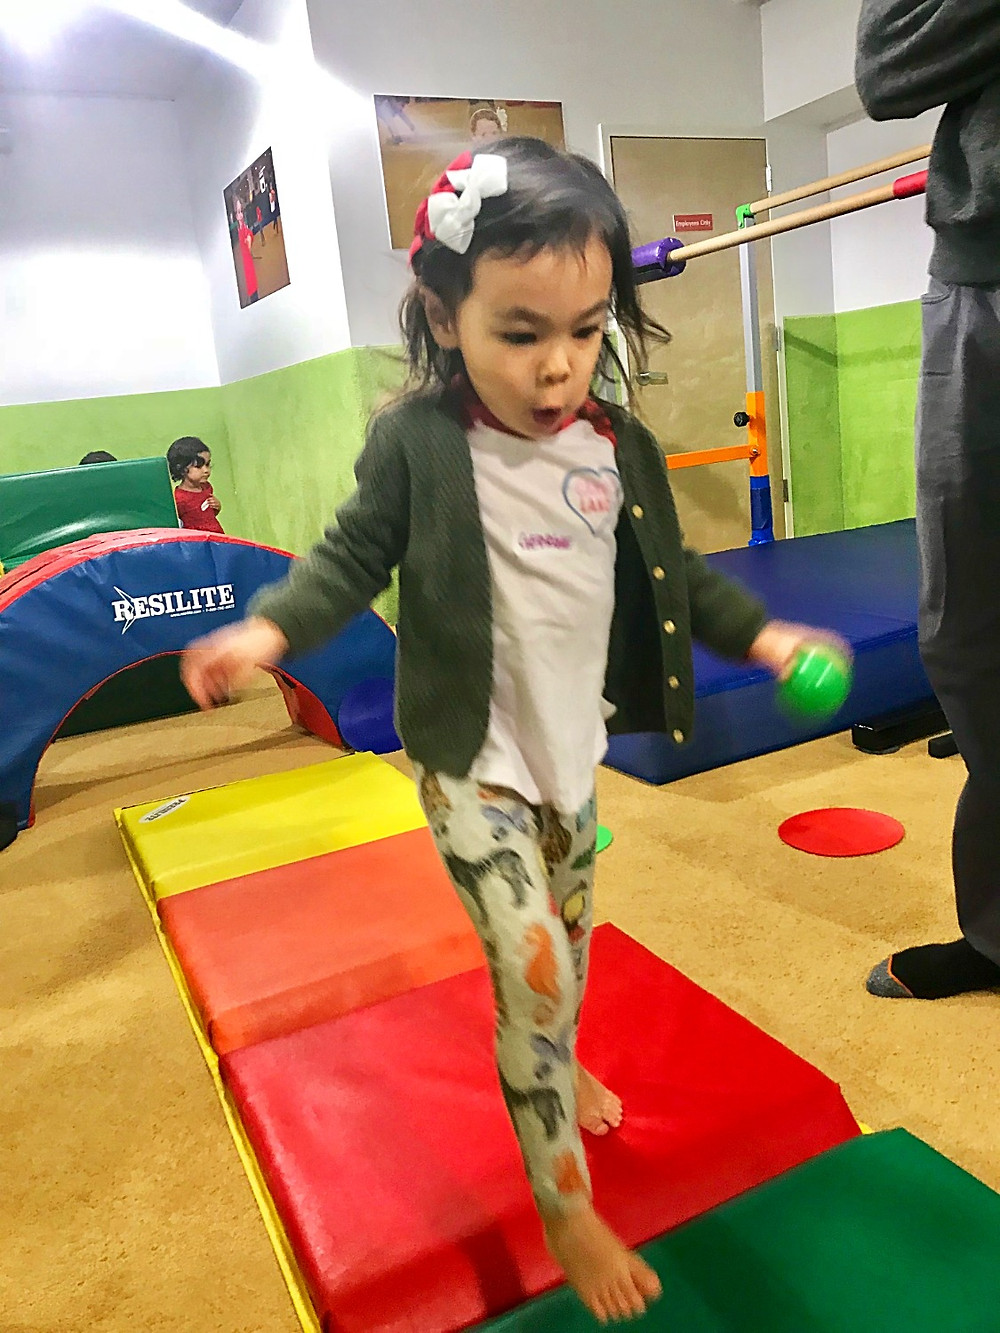 New York Kids Club, best indoor gyms for kids in NYC, Curious G and Me, NYC Winter Indoor activity guide for kids